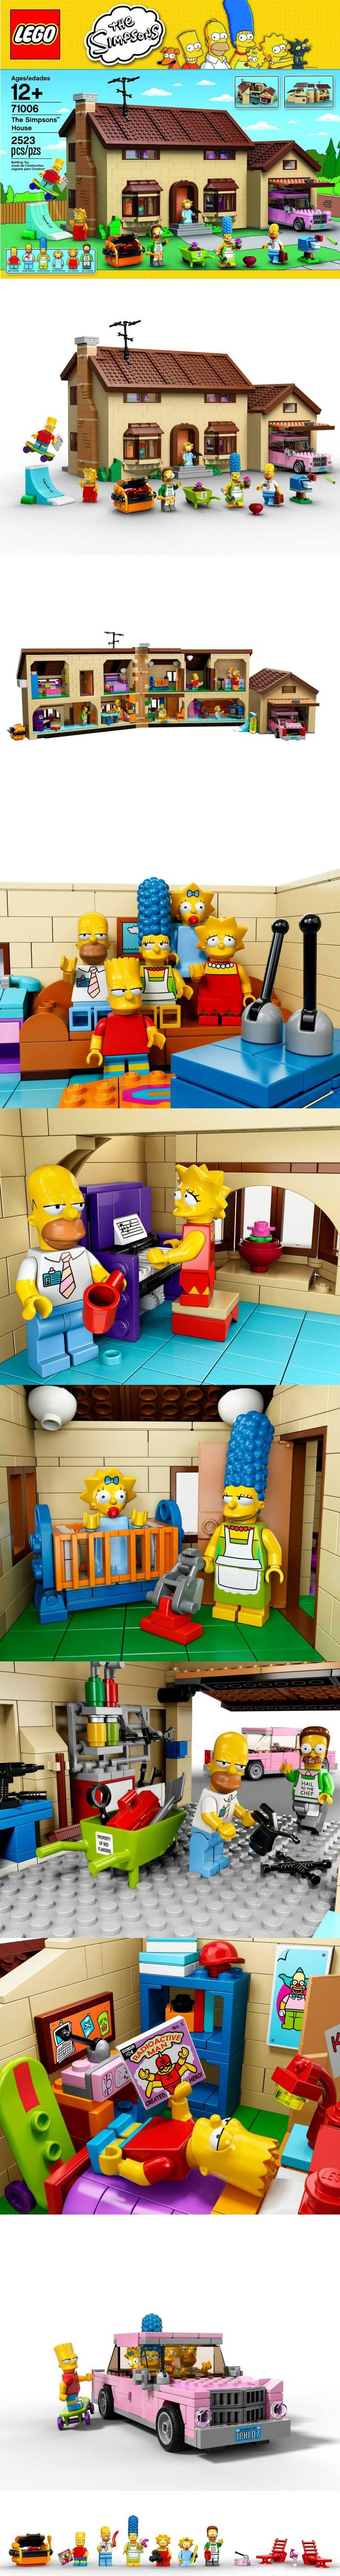 LEGO 71006 - The Simpsons House - official images